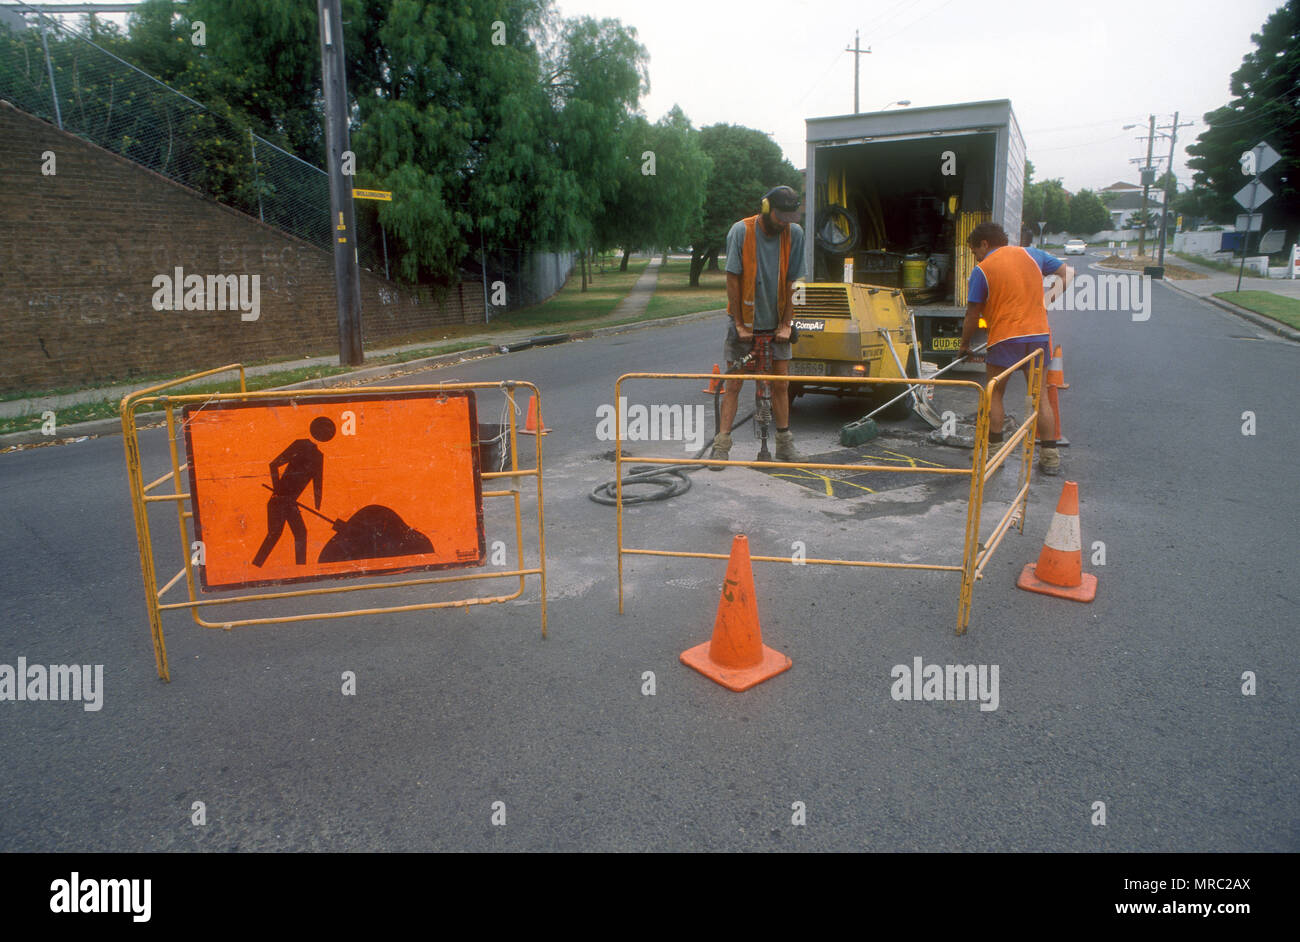 ROAD RESURFACING IN PROGRESS, SYDNEY, NEW SOUTH WALES, AUSTRALIA - Stock Image